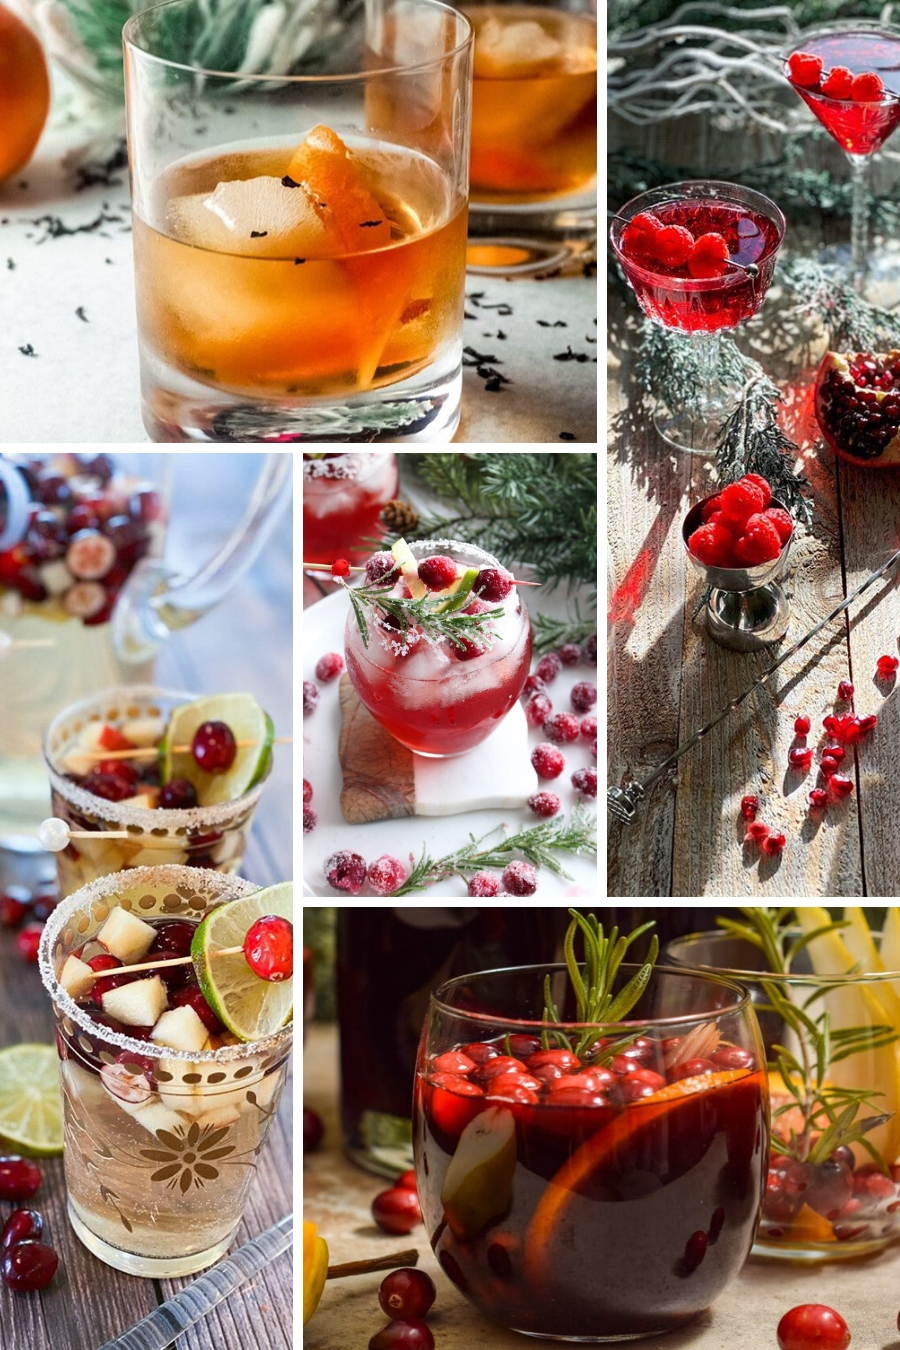 10 Christmas and Holiday Cocktails from Top Bloggers. From tequila to rum, to Aperol, to wine - something for everyone. via @krazykitchenmom